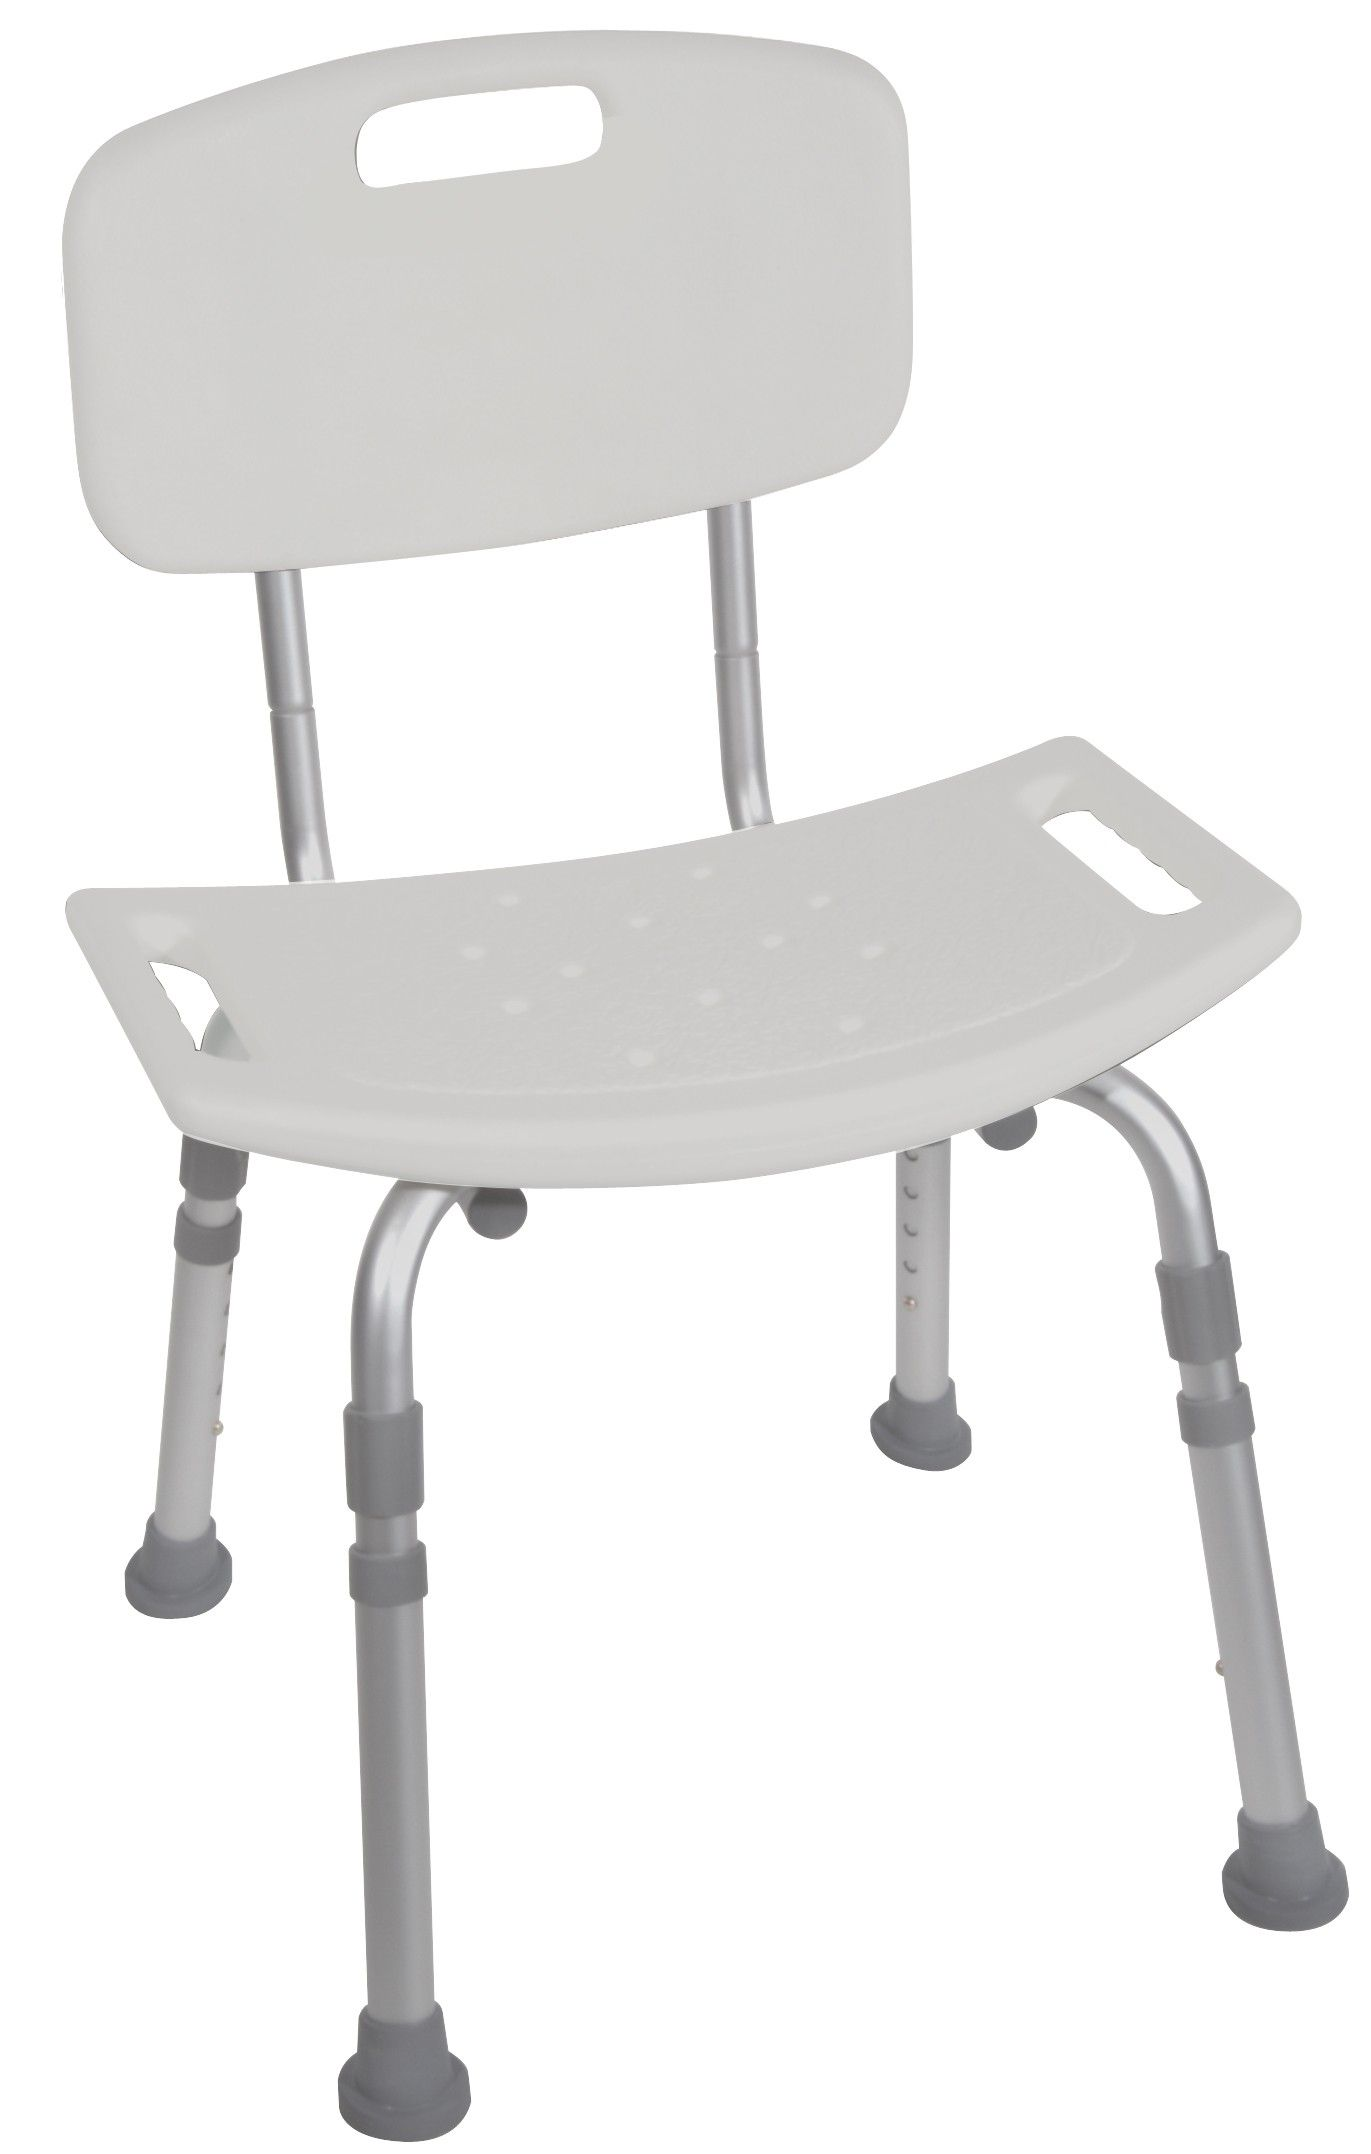 Shower stools for the elderly, handicapped shower stool, portable ...